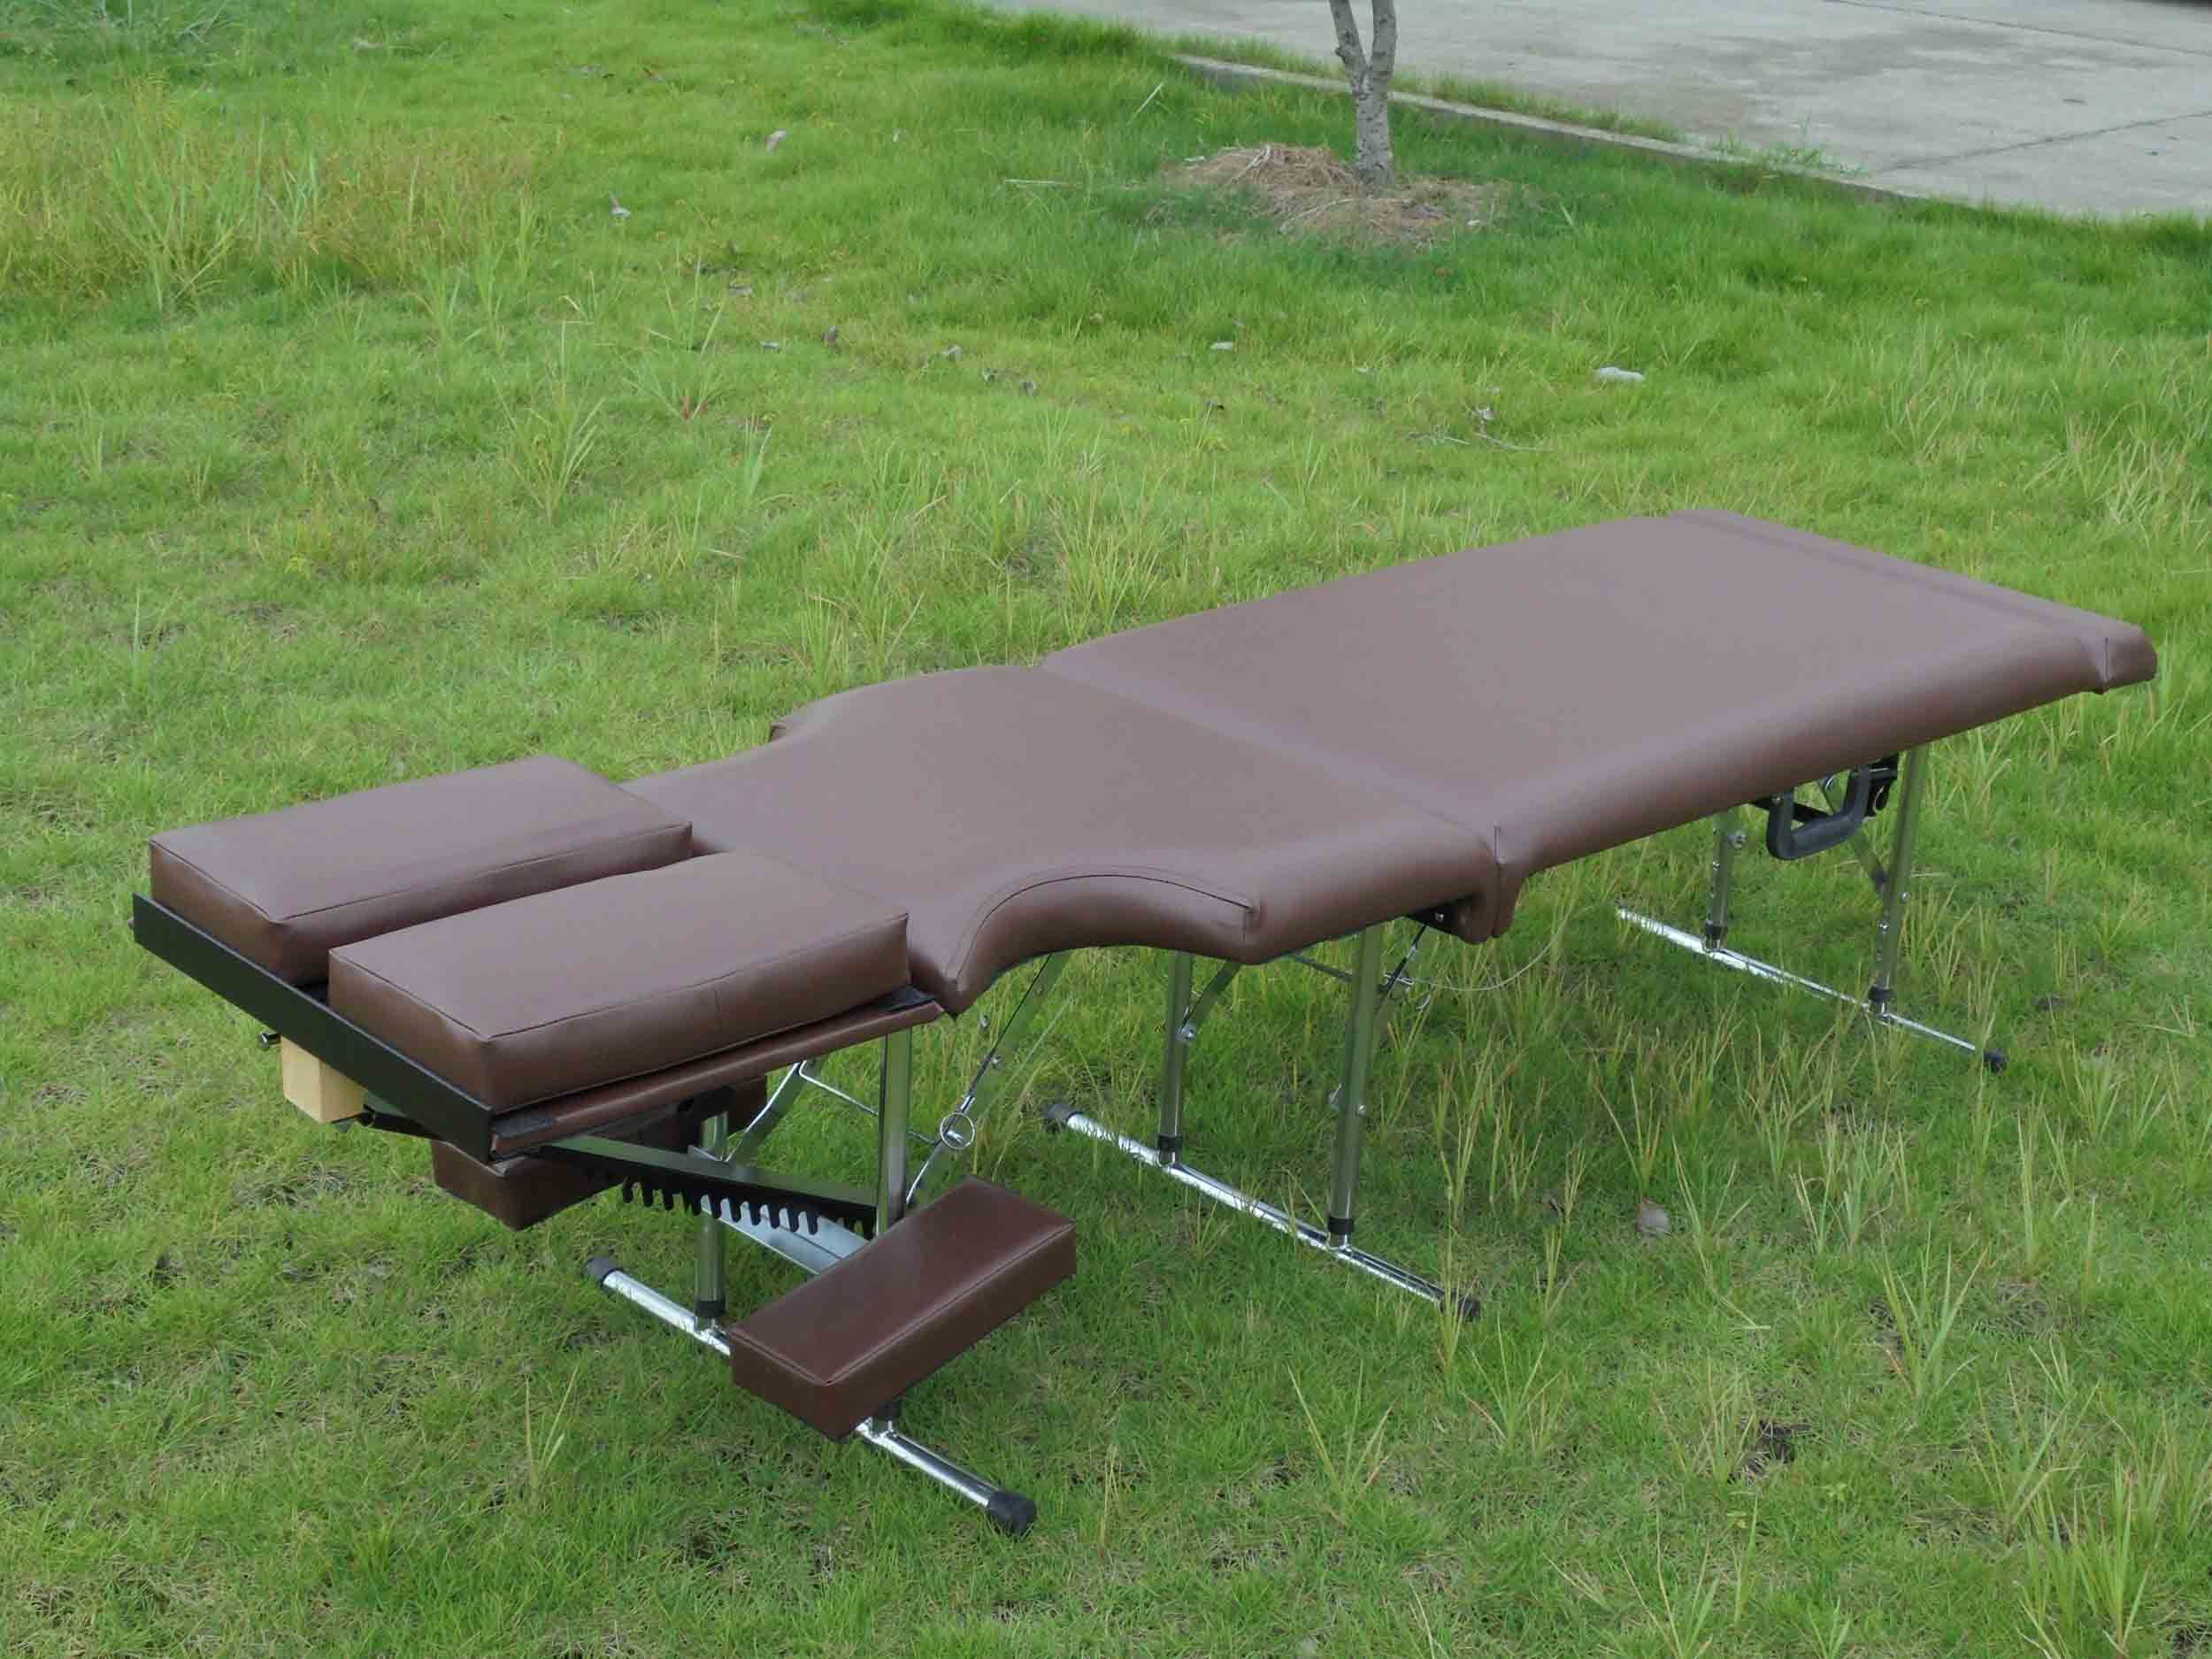 Professional Chiropractic Table-New Design